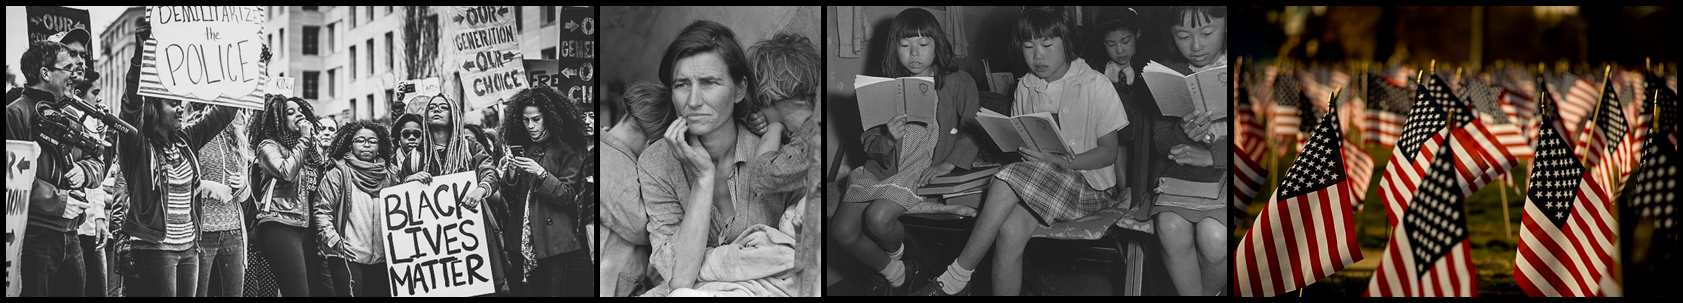 Montage of photos: 1. Protesters at a Black Lives Matter march 2. Dorothea Lange photo of mother and children 3. Ansel Adams photo of Japanese American children at Sunday school, Manzanar Relocation Center 4. US flags